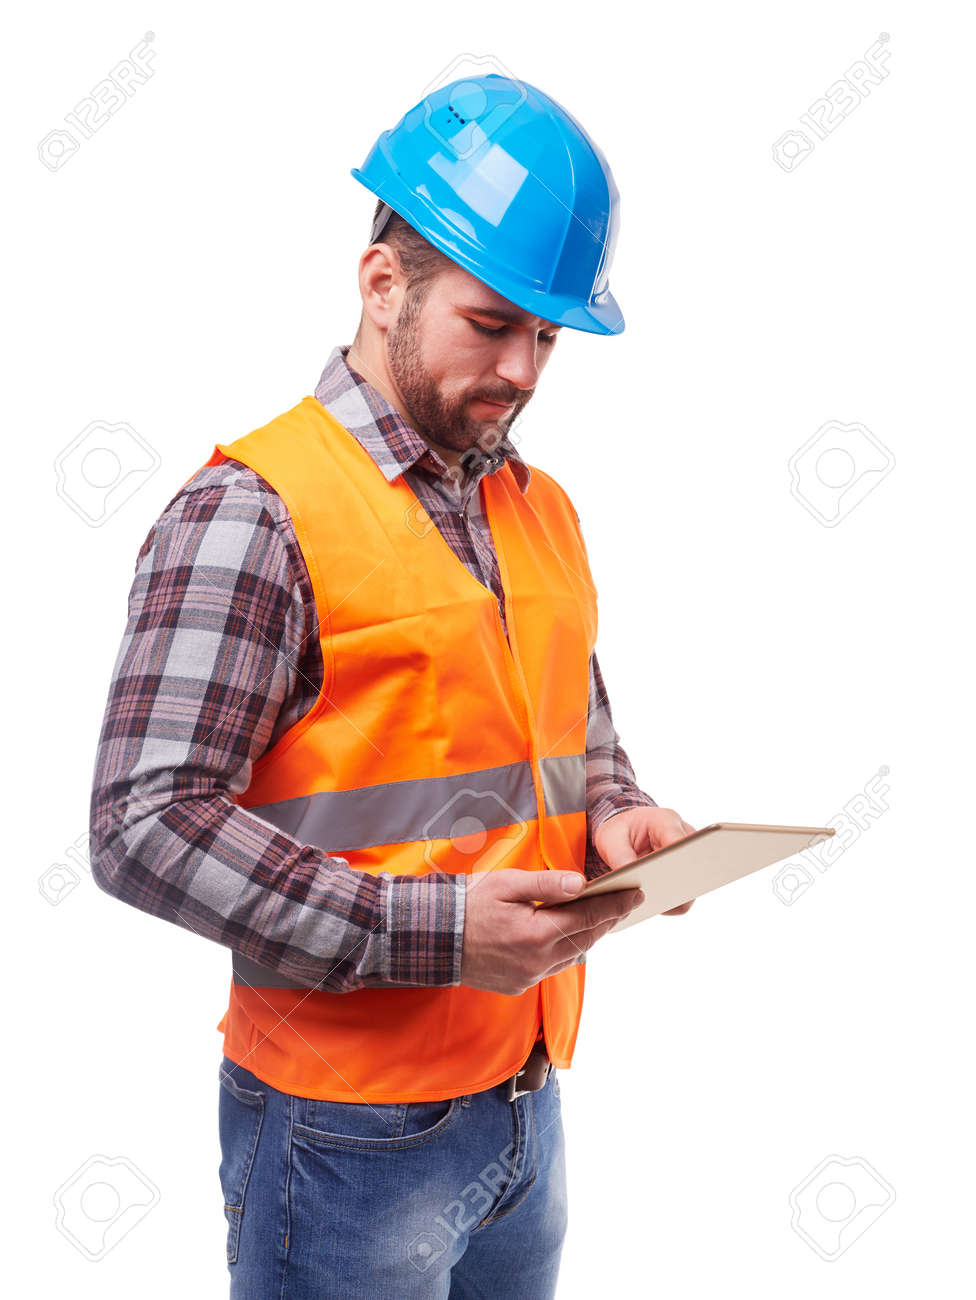 Manual worker in blue helmet and shirt using a digital tablet, isolated on white. - 57154831